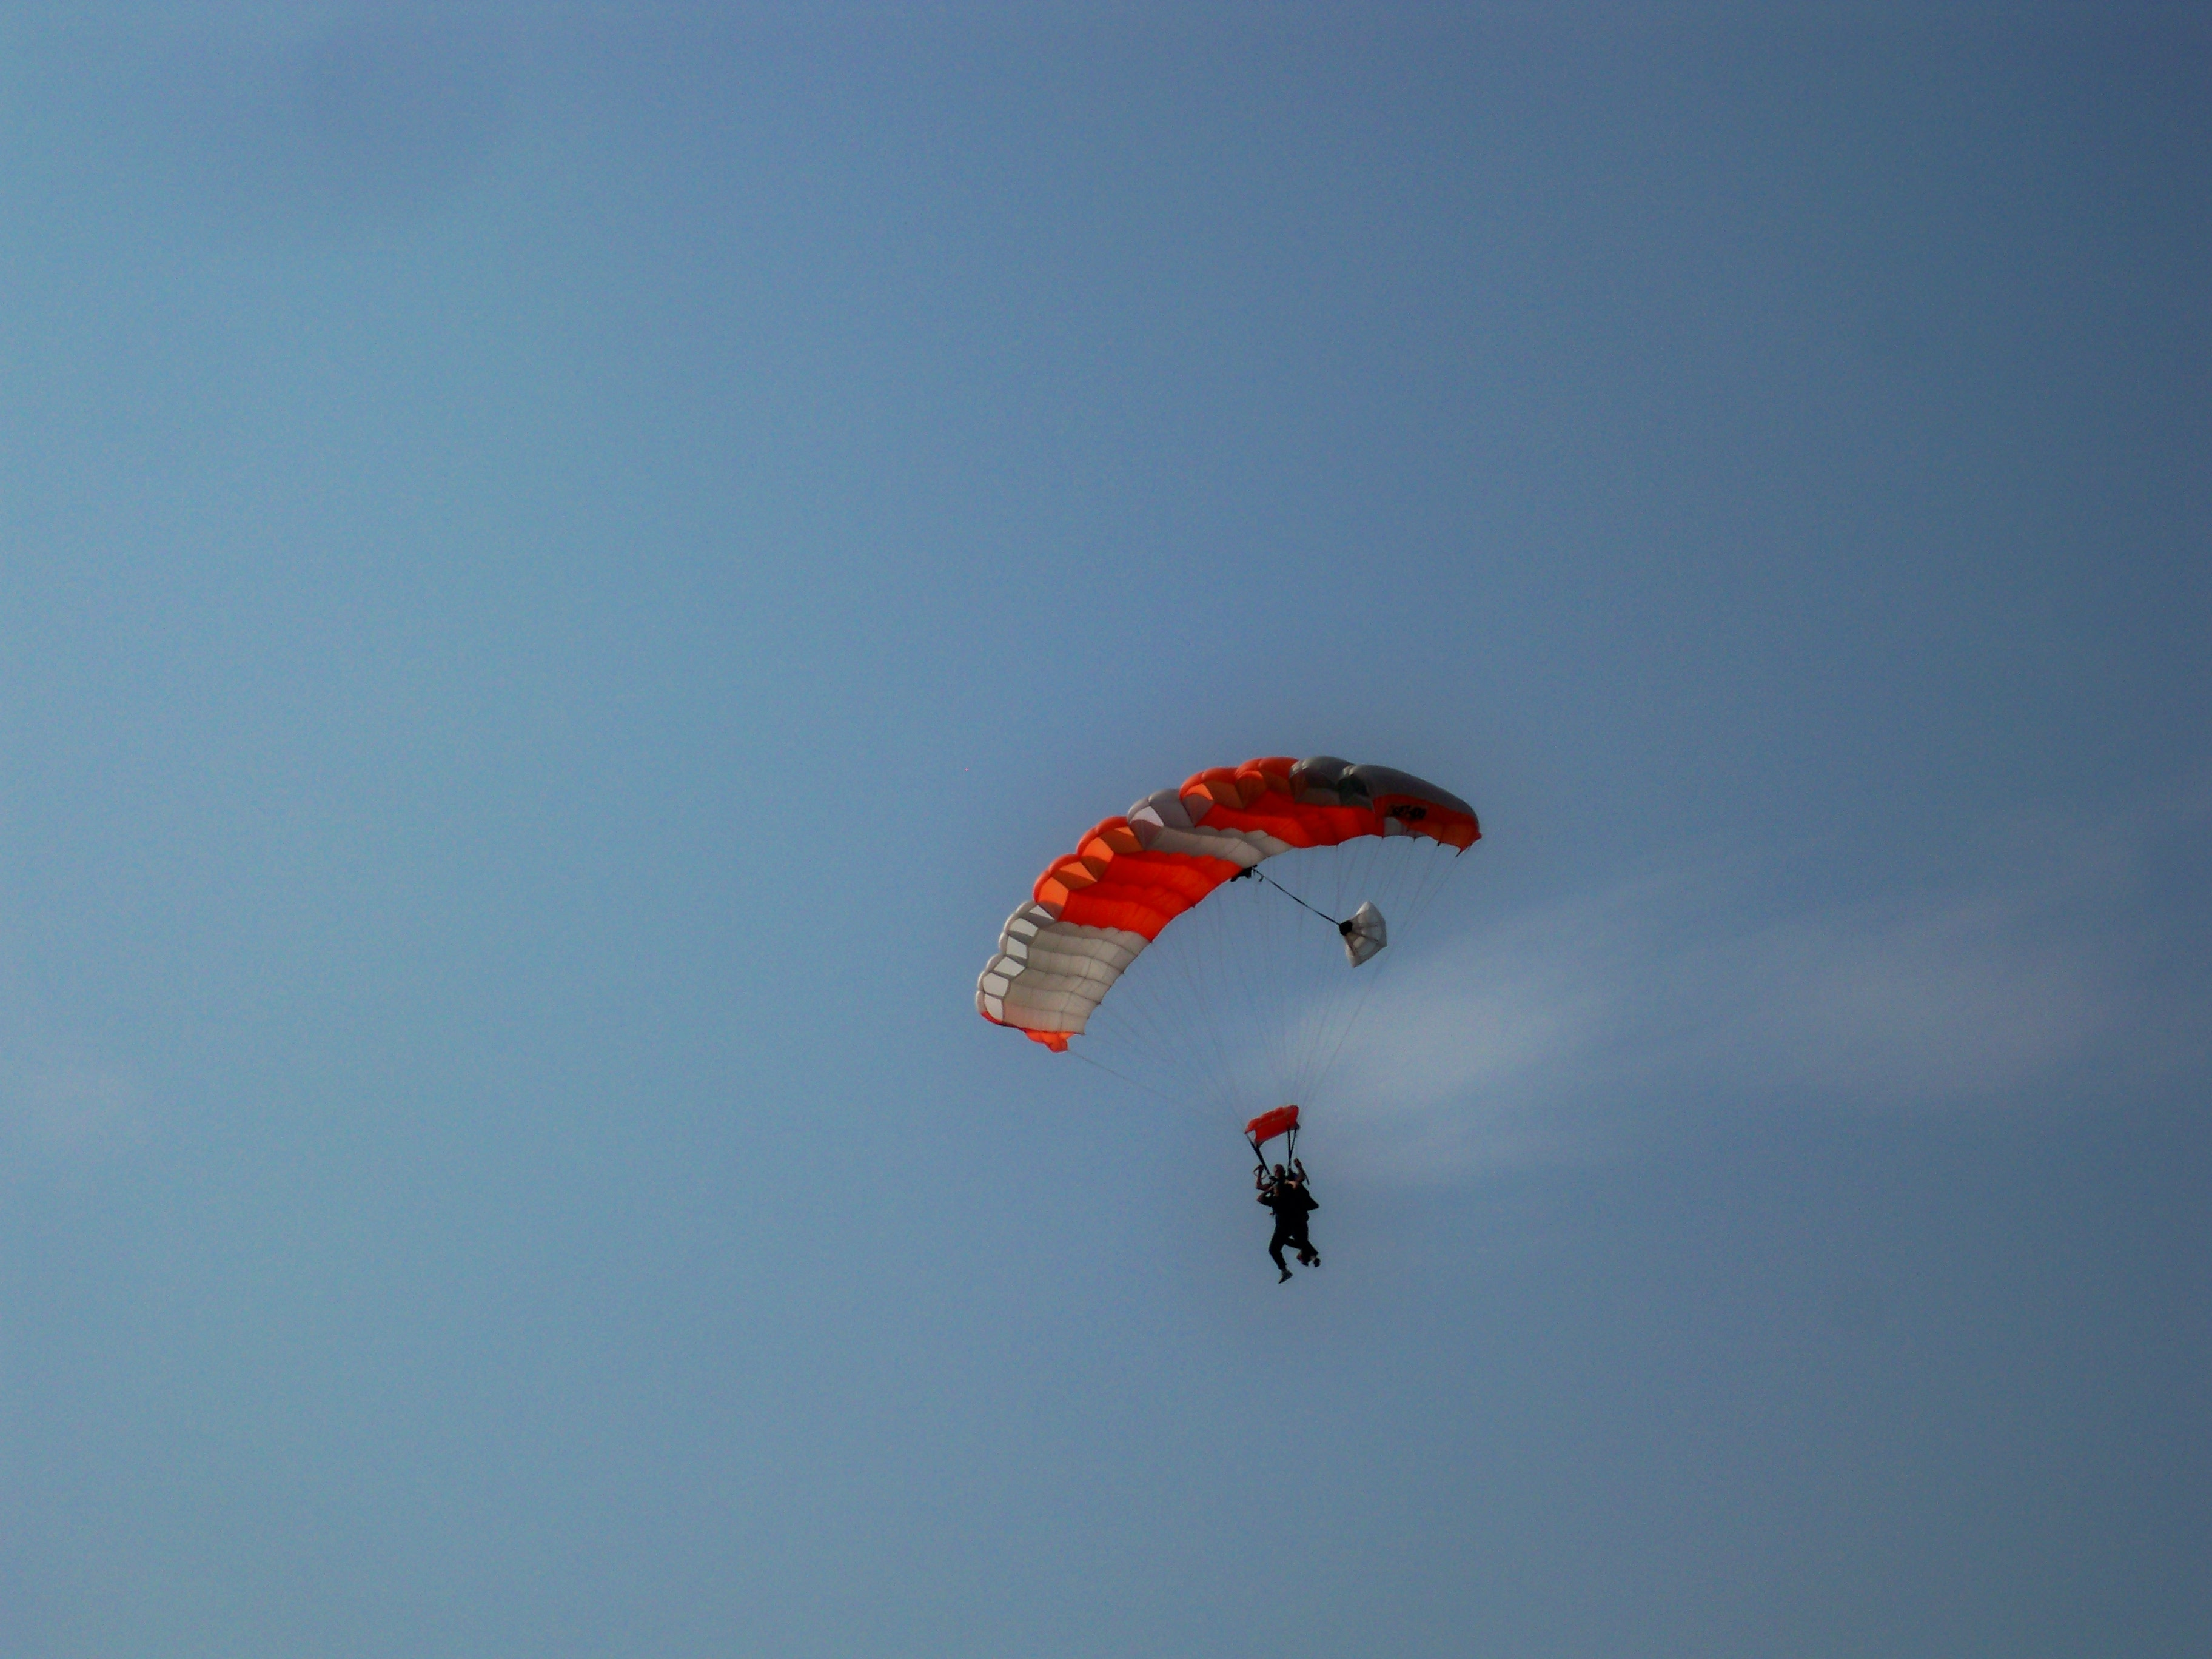 Skydiving at Sunset #4